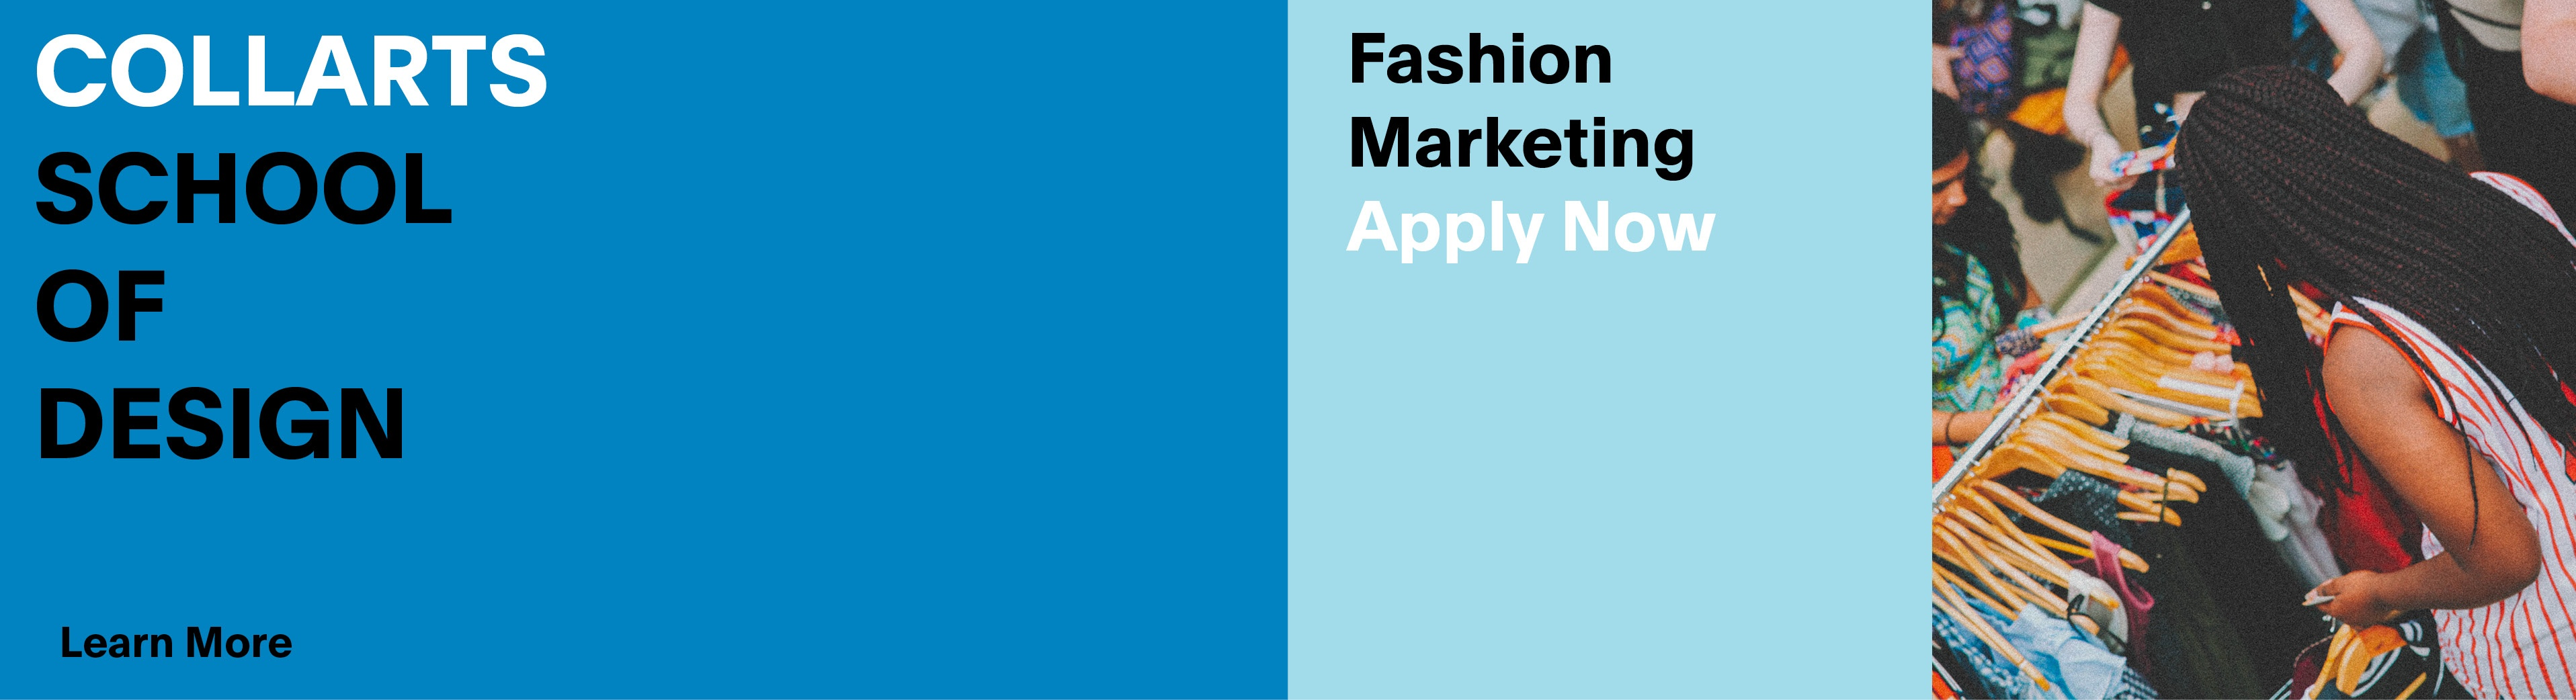 Fashion Marketing - Apply Now